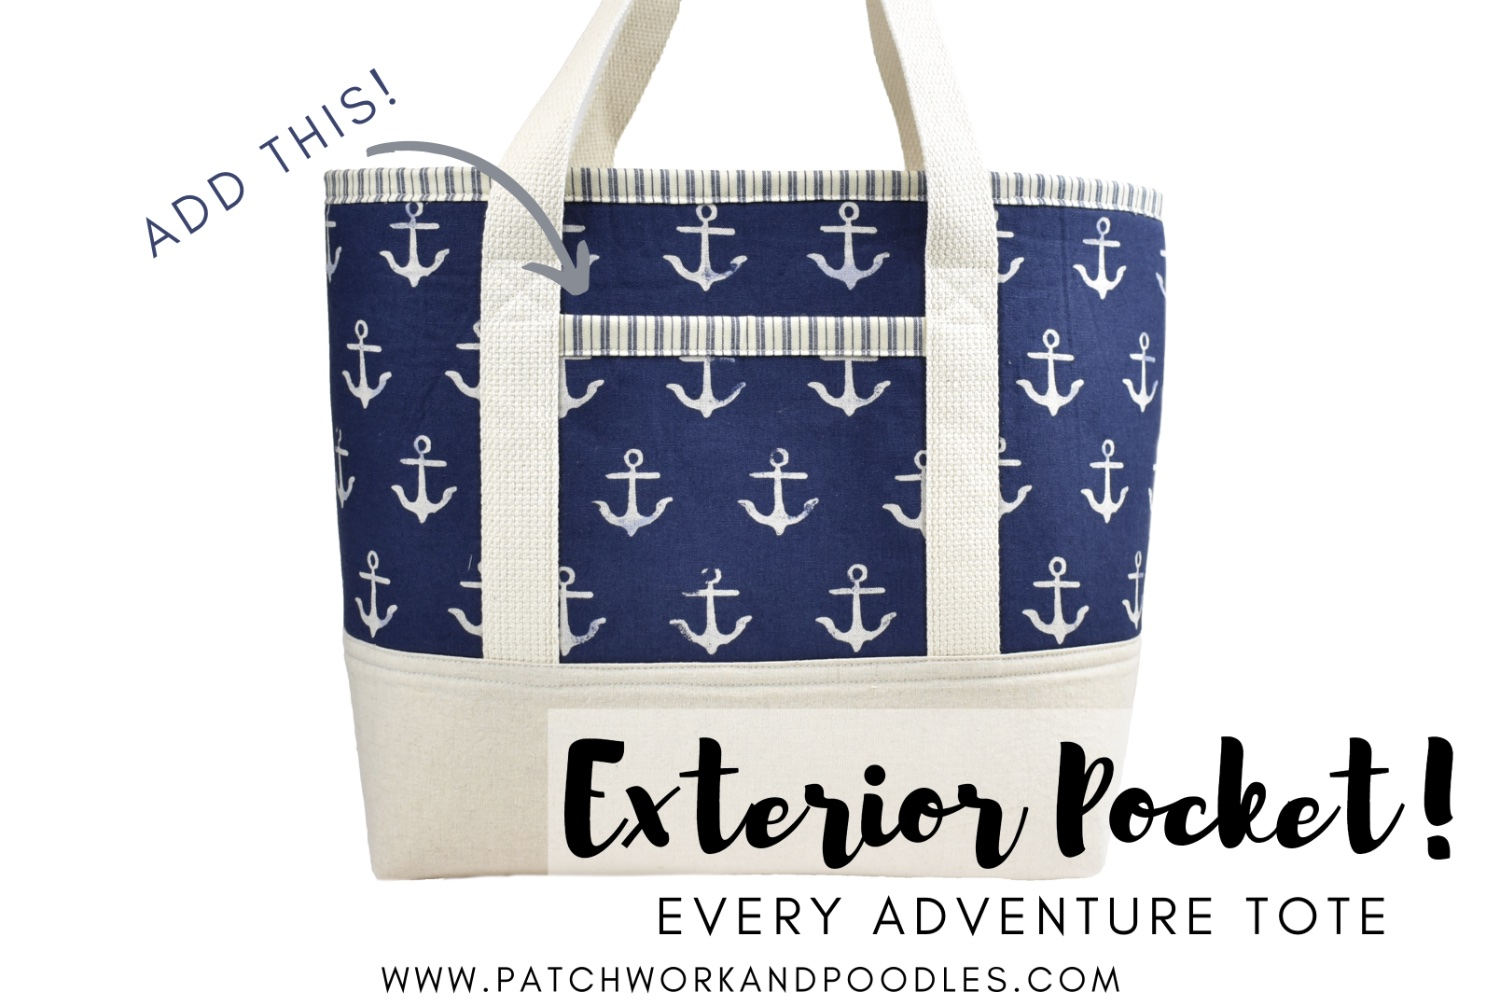 Exterior Pocket | Every Adventure Tote Bag